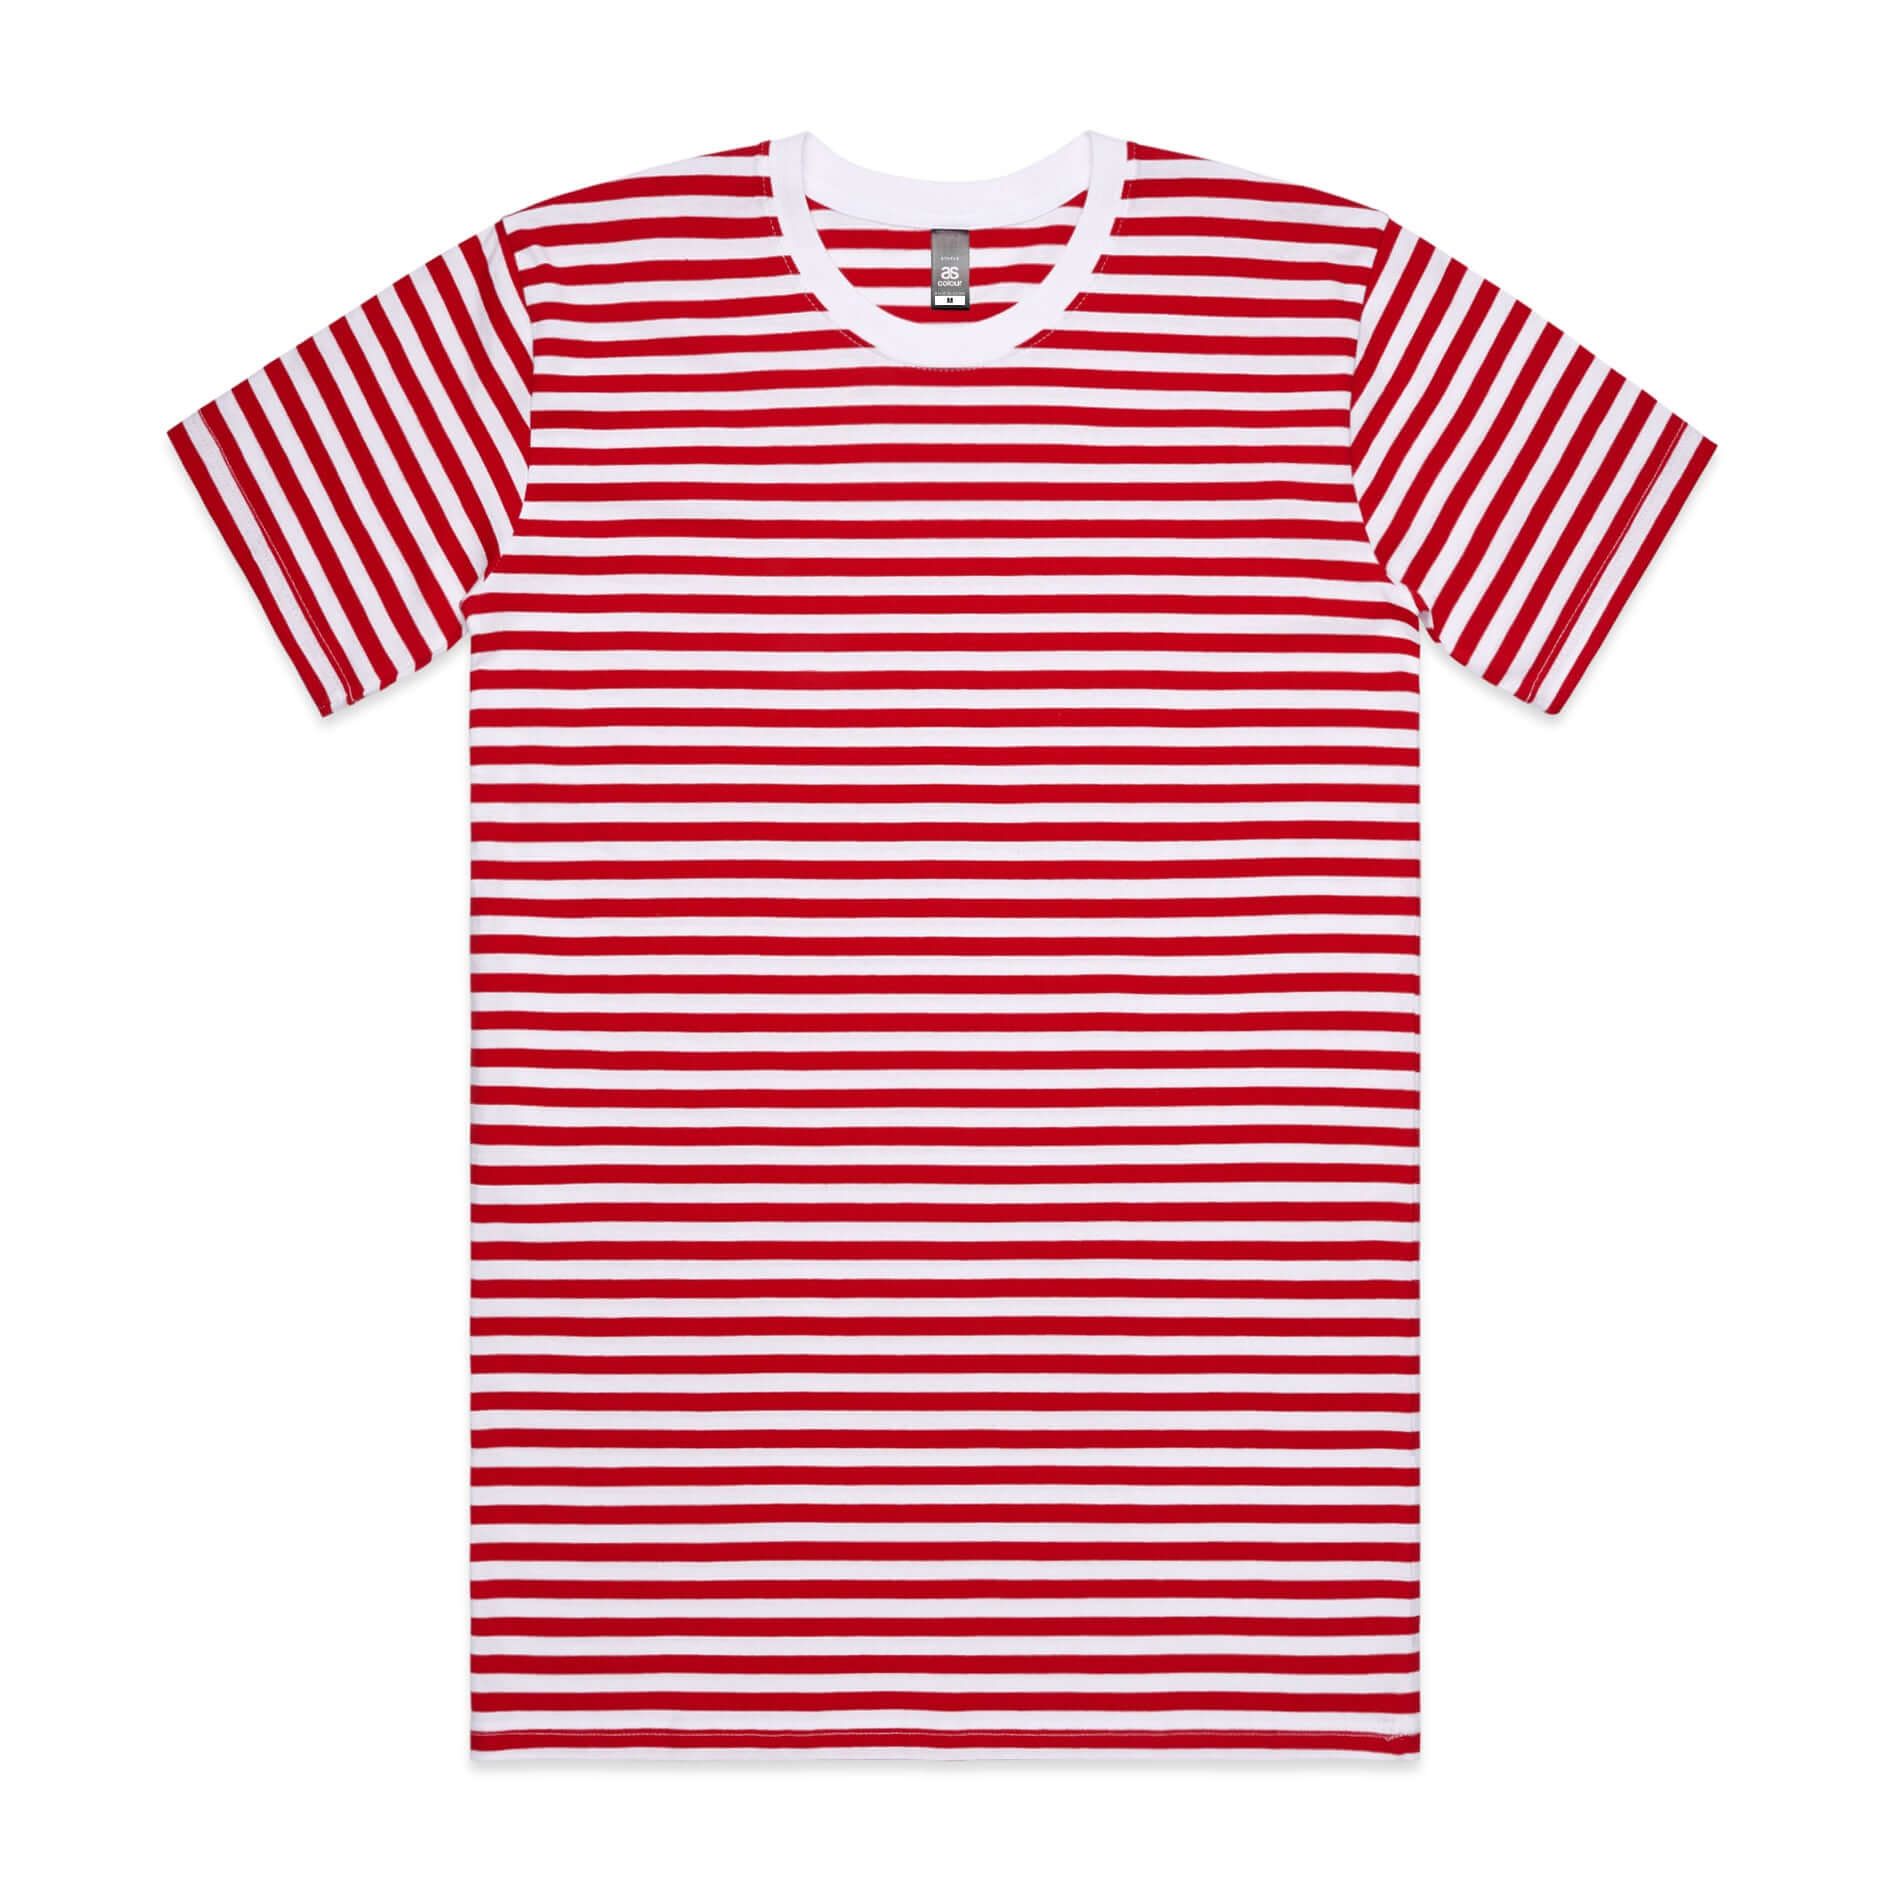 AS Colour STAPLE STRIPE TEE - Red / White